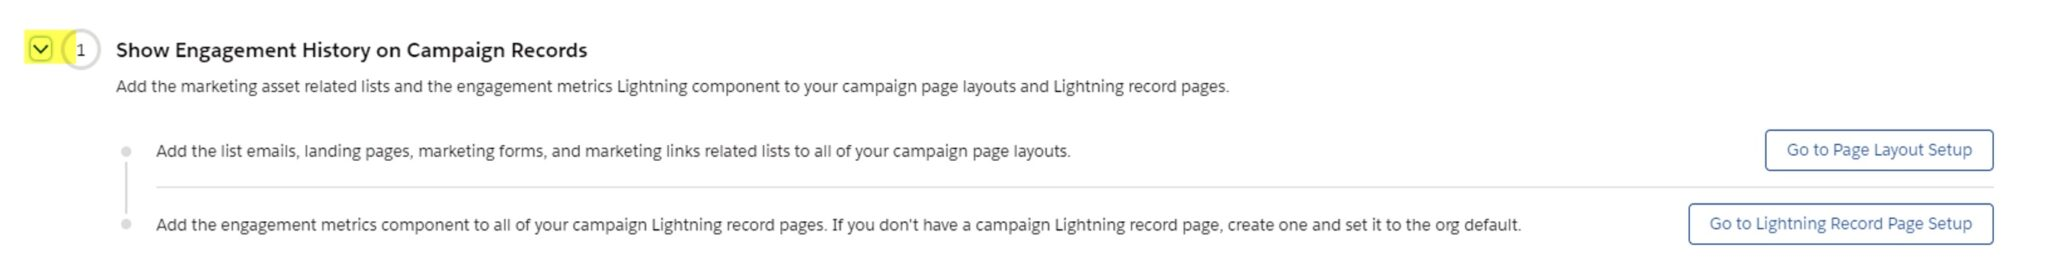 screenshot of engagement history on campaign records in Salesforce